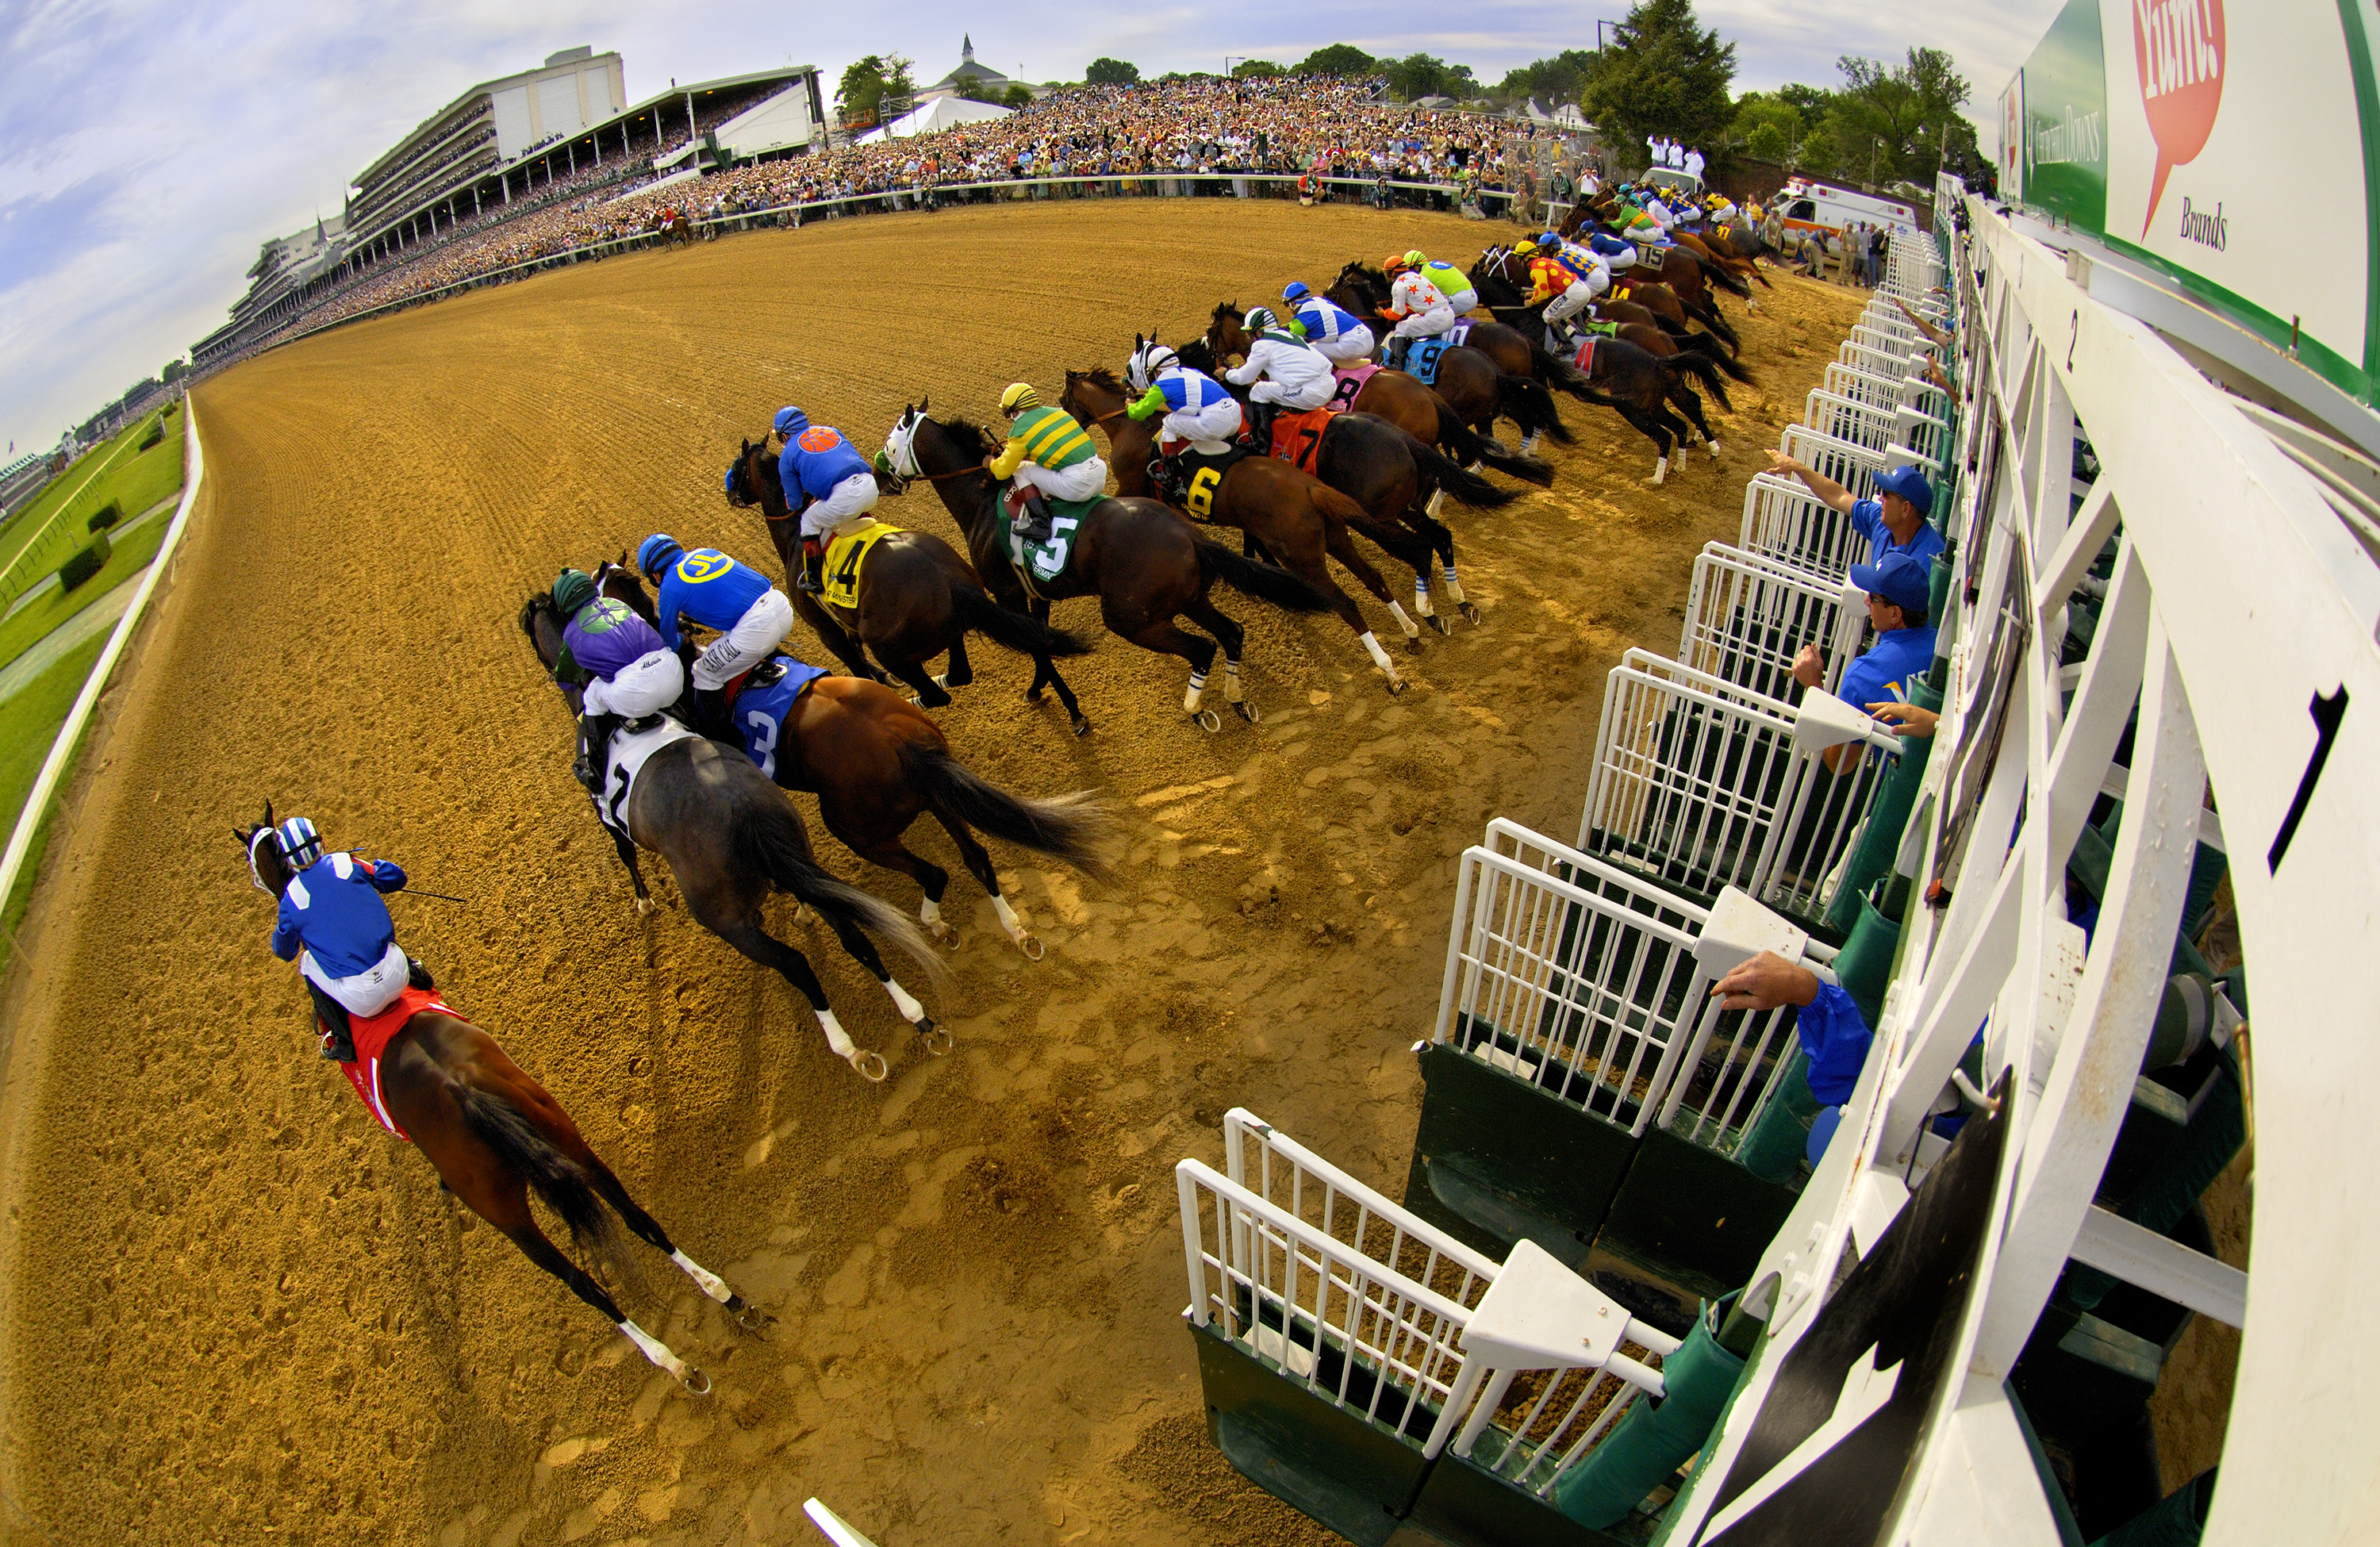 Out-of-the-Gate-Kentucky-Derby-300dpi